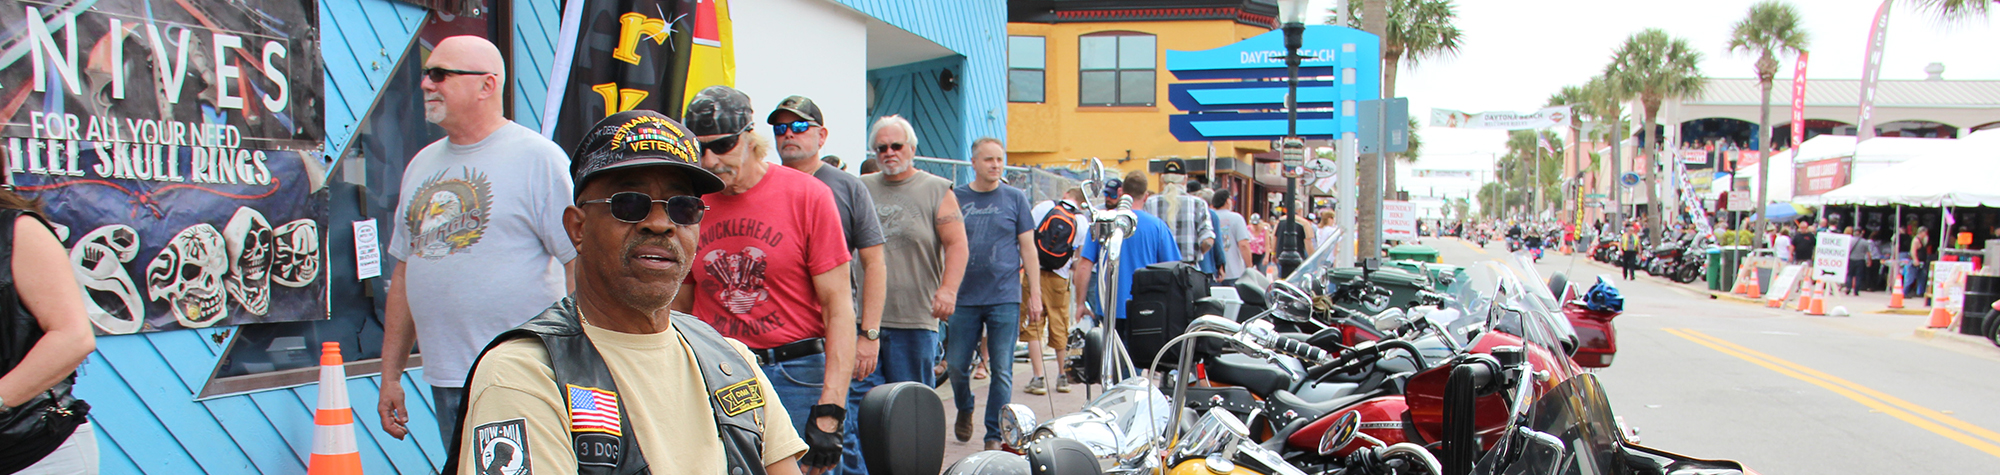 Daytona Bike Week Photos – March 10th 2020